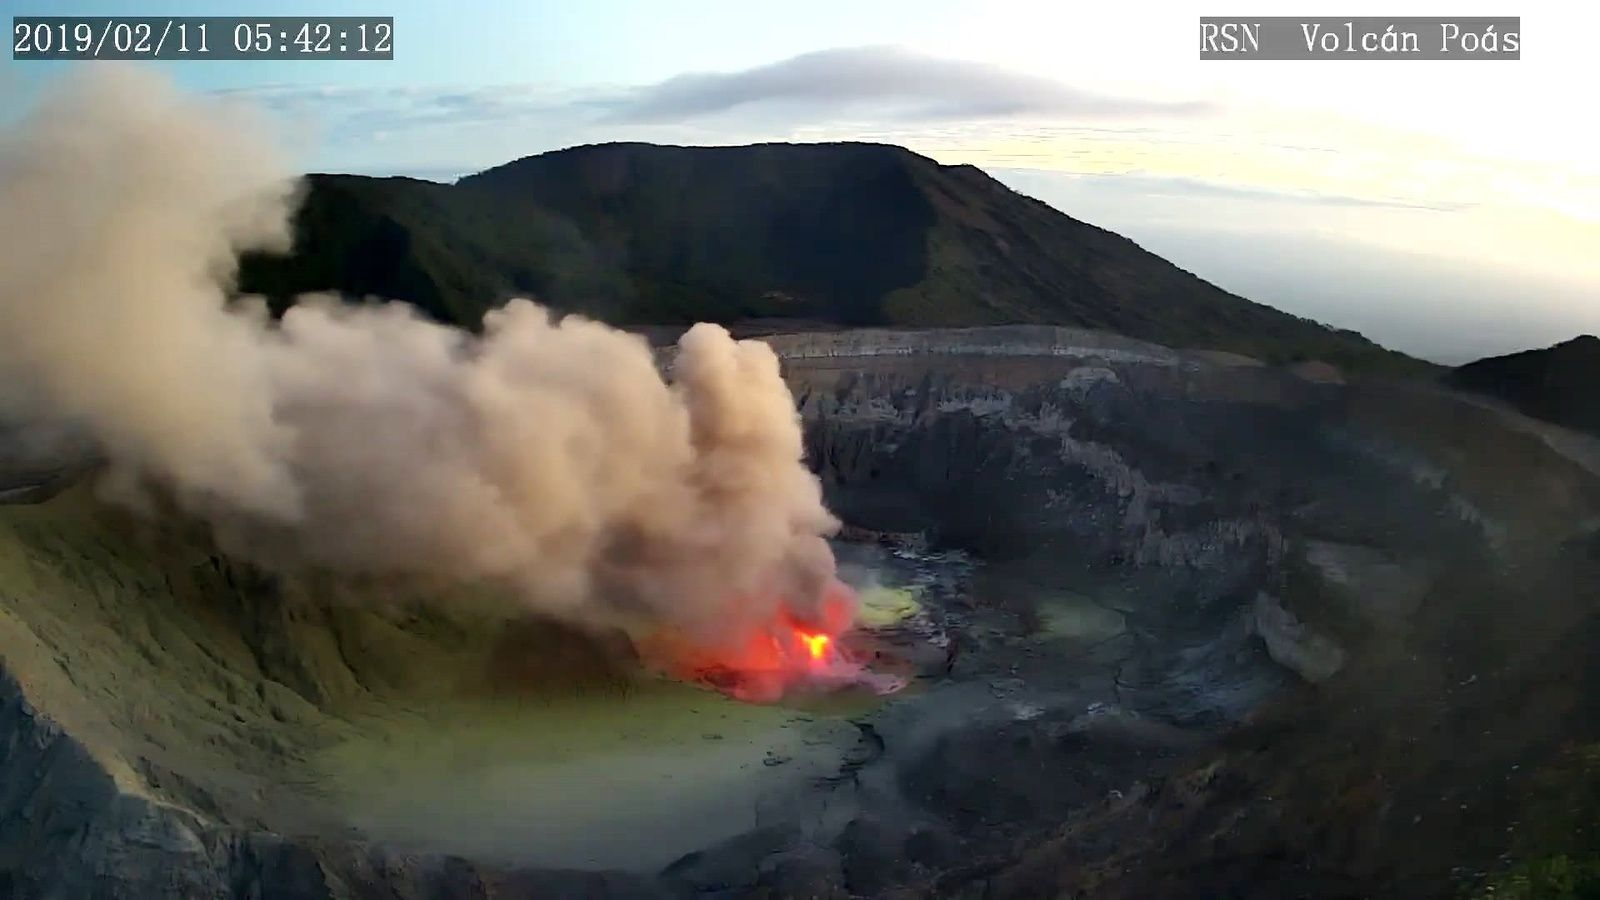 Poas - incandescence, plume and crater floor covered with yellowish deposits - RSN webcam